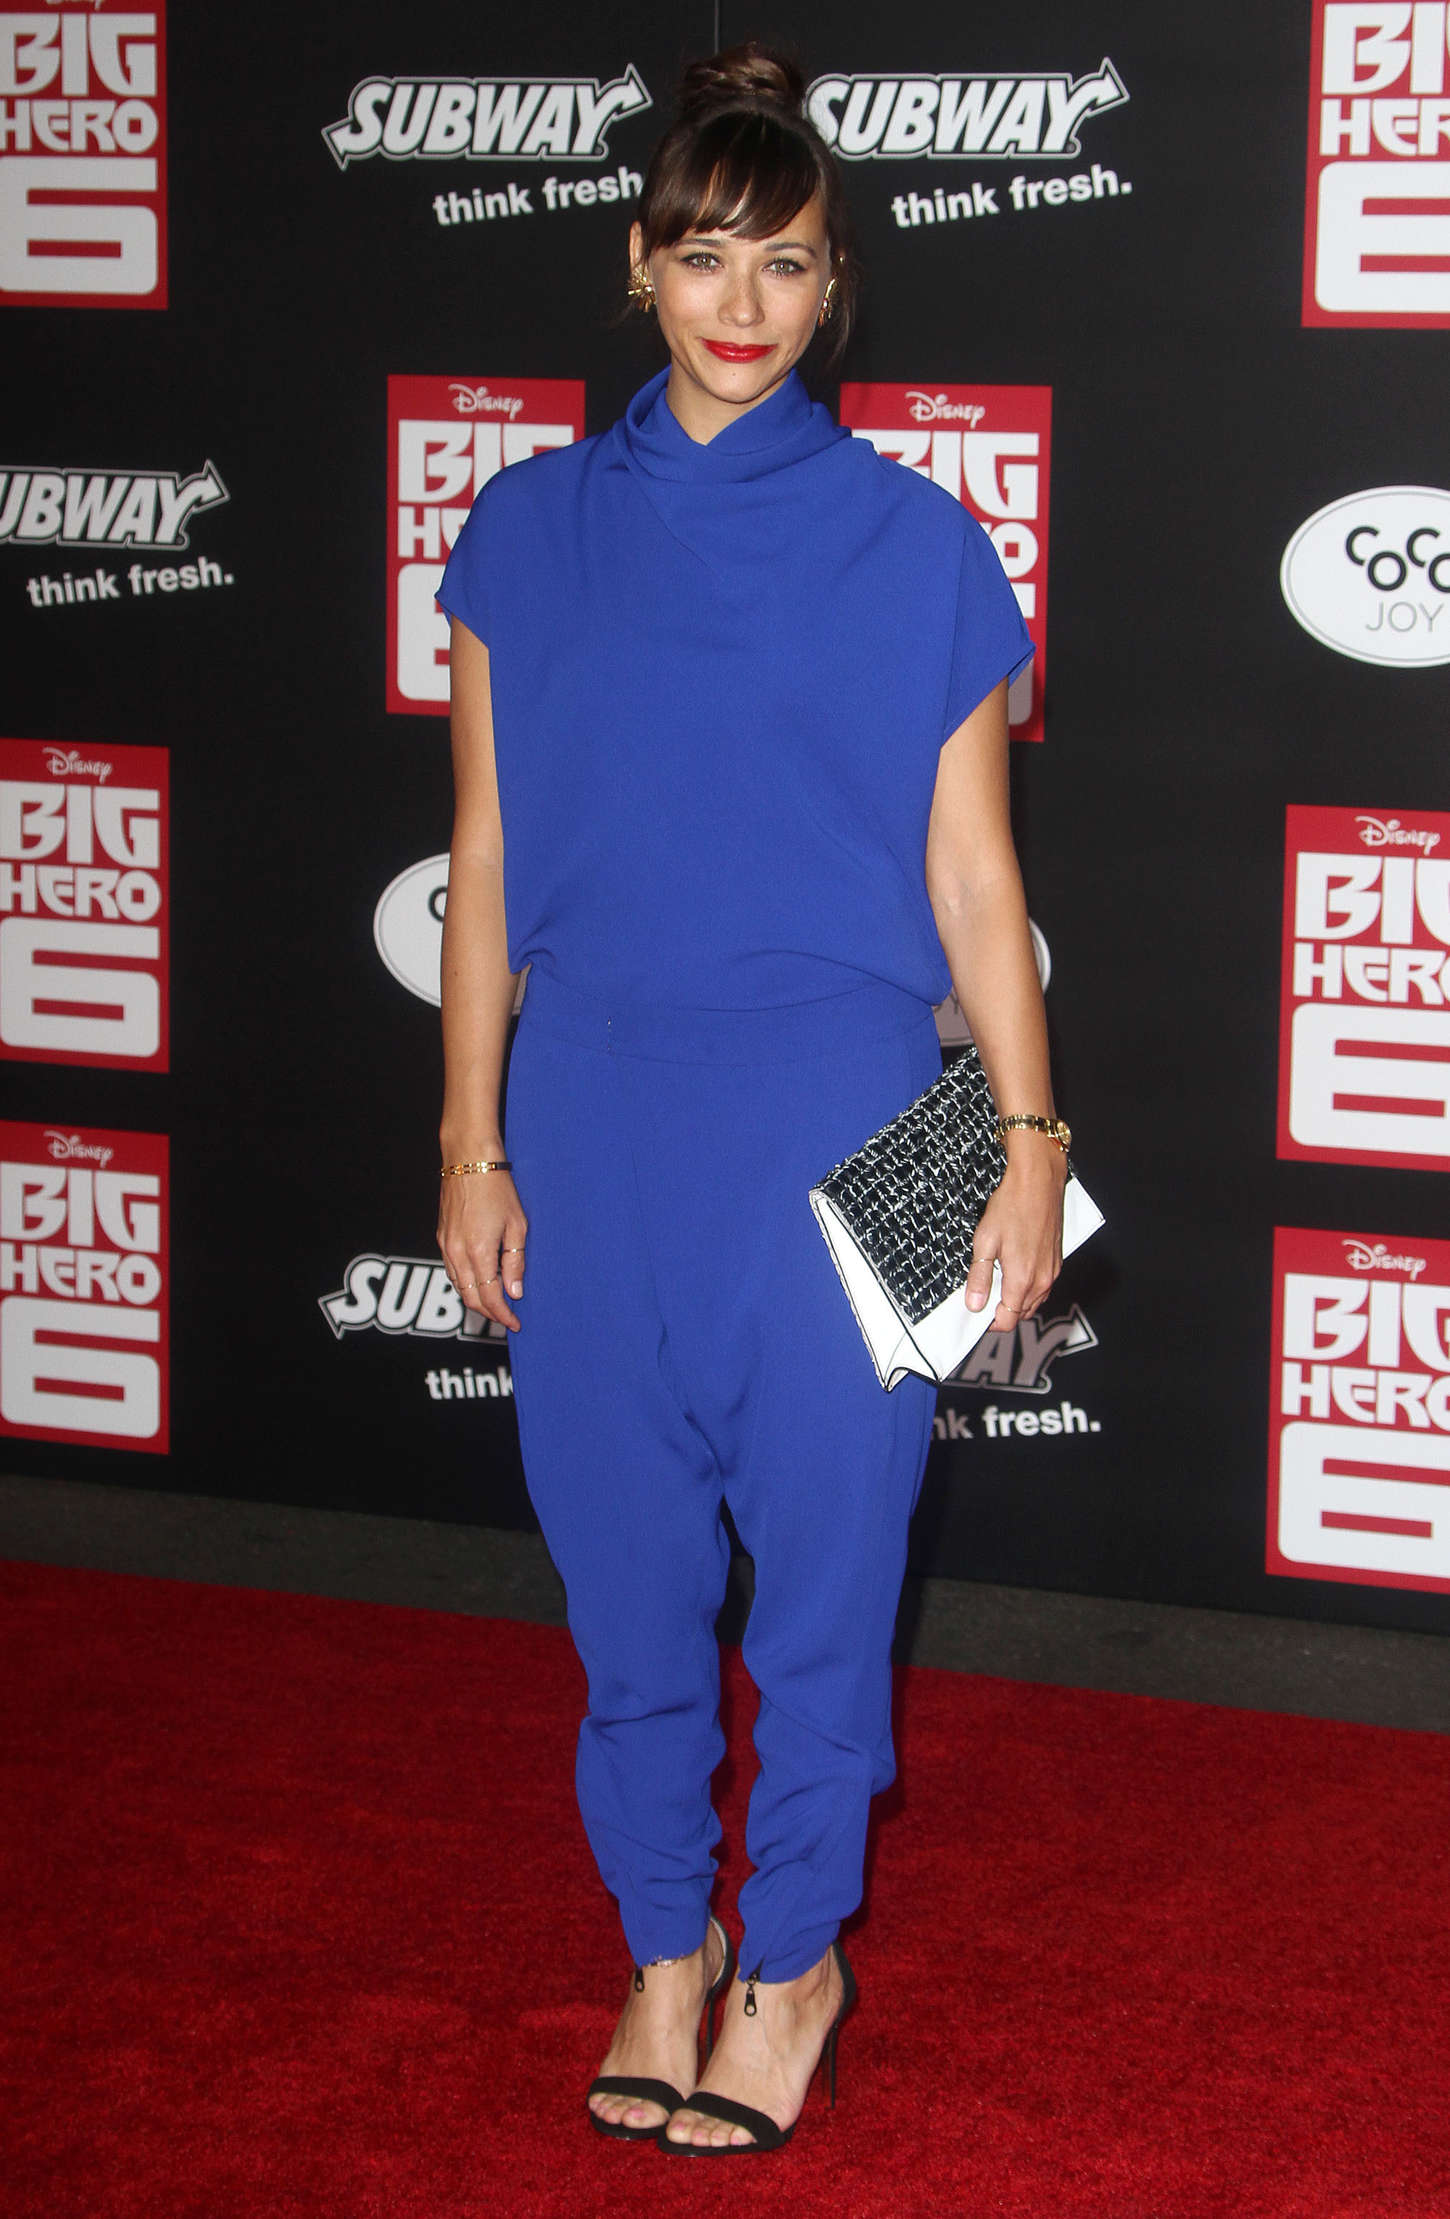 get-the-look-rashida-joness-big-hero-6-hollywood-premiere-camilla-and-marc-download-trousers-and-agility-top